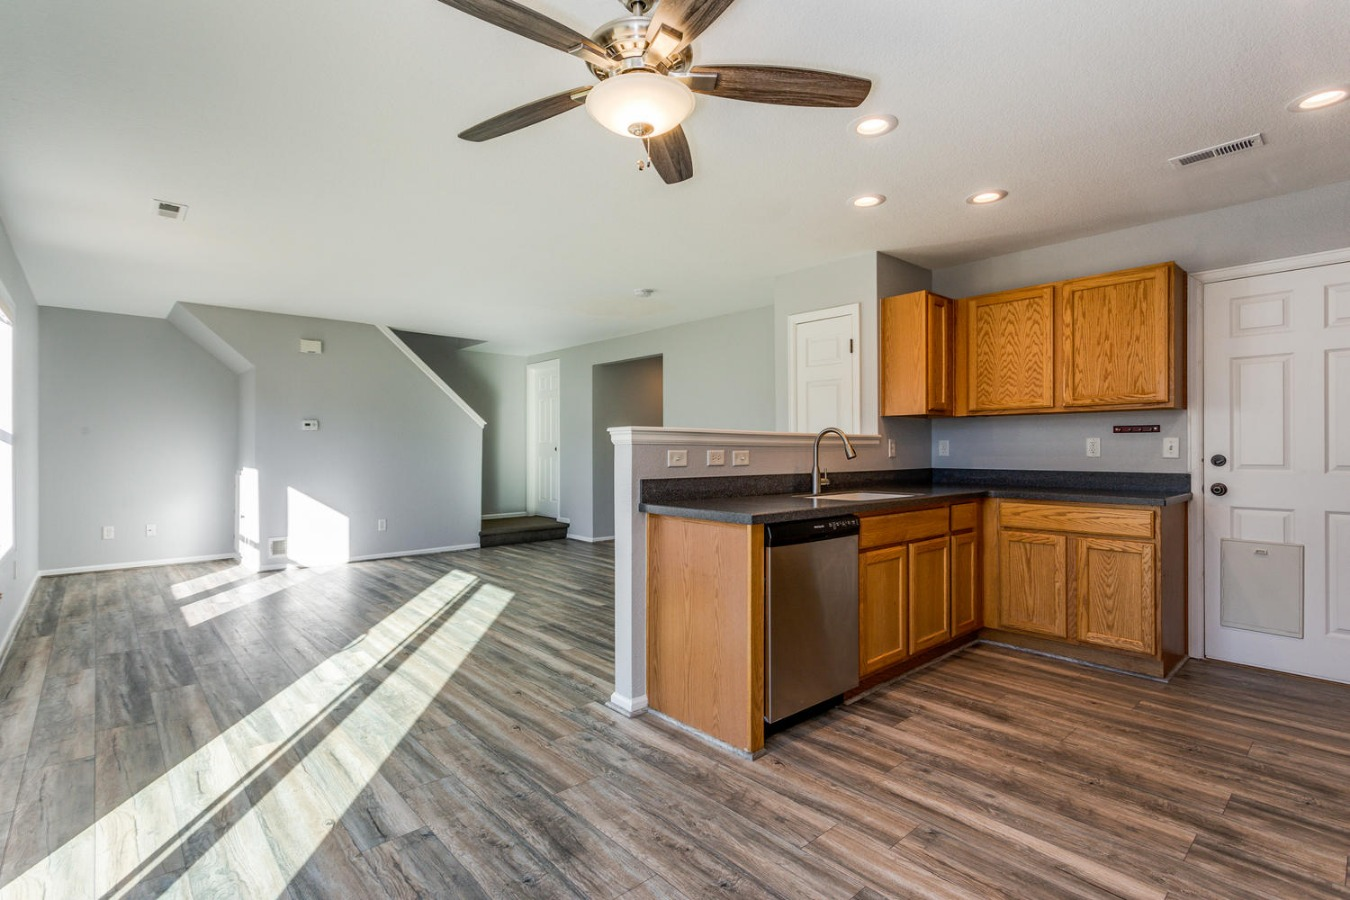 Space in Kitchen for Large Table